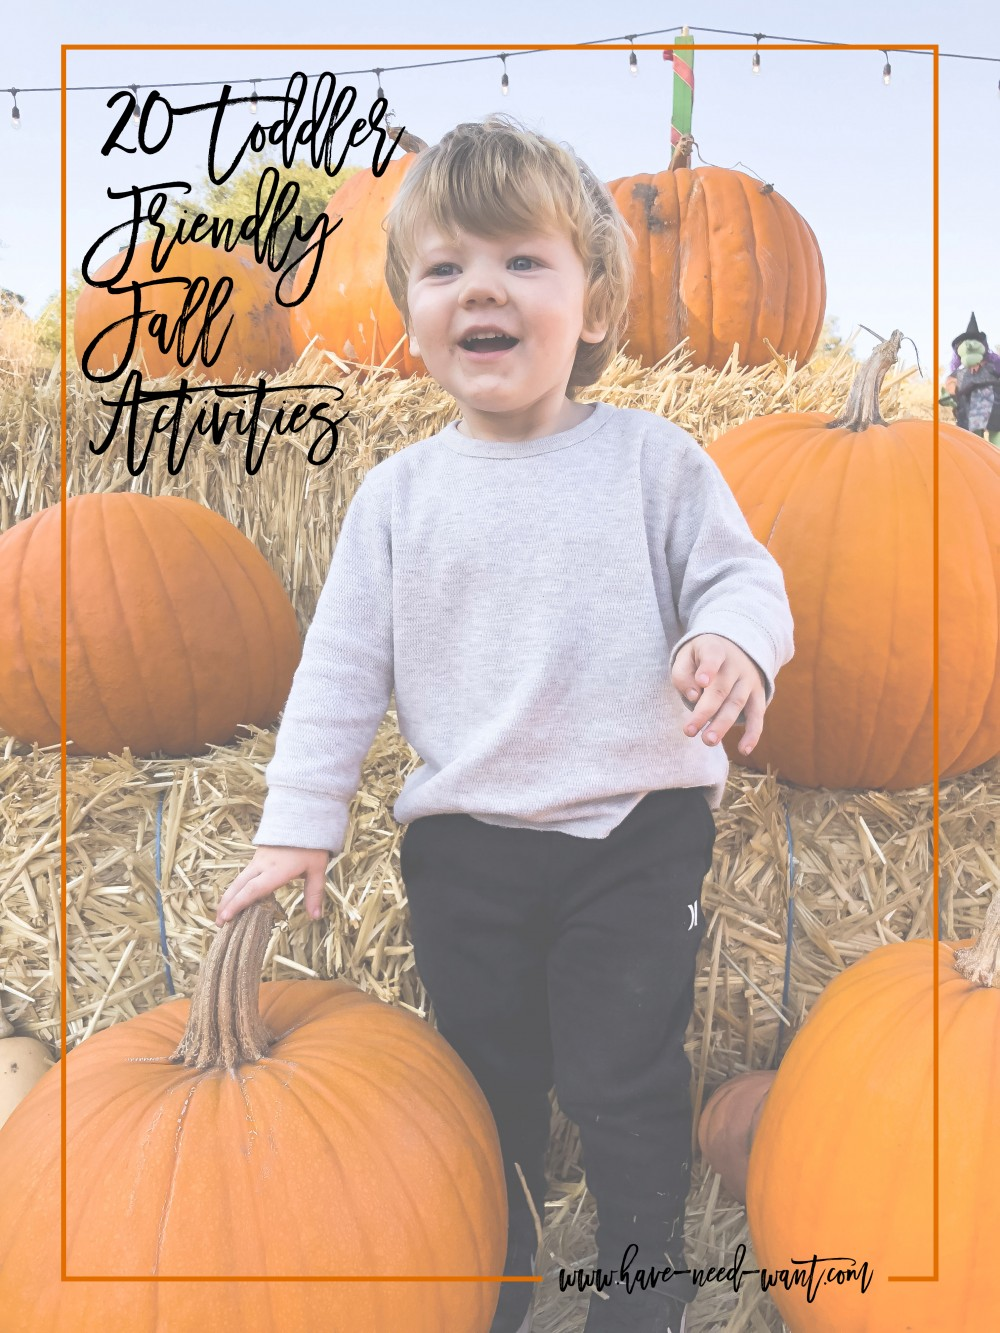 20 Toddler Friendly Fall Activities, Fall Family Activities, Pinterest, Have Need Want